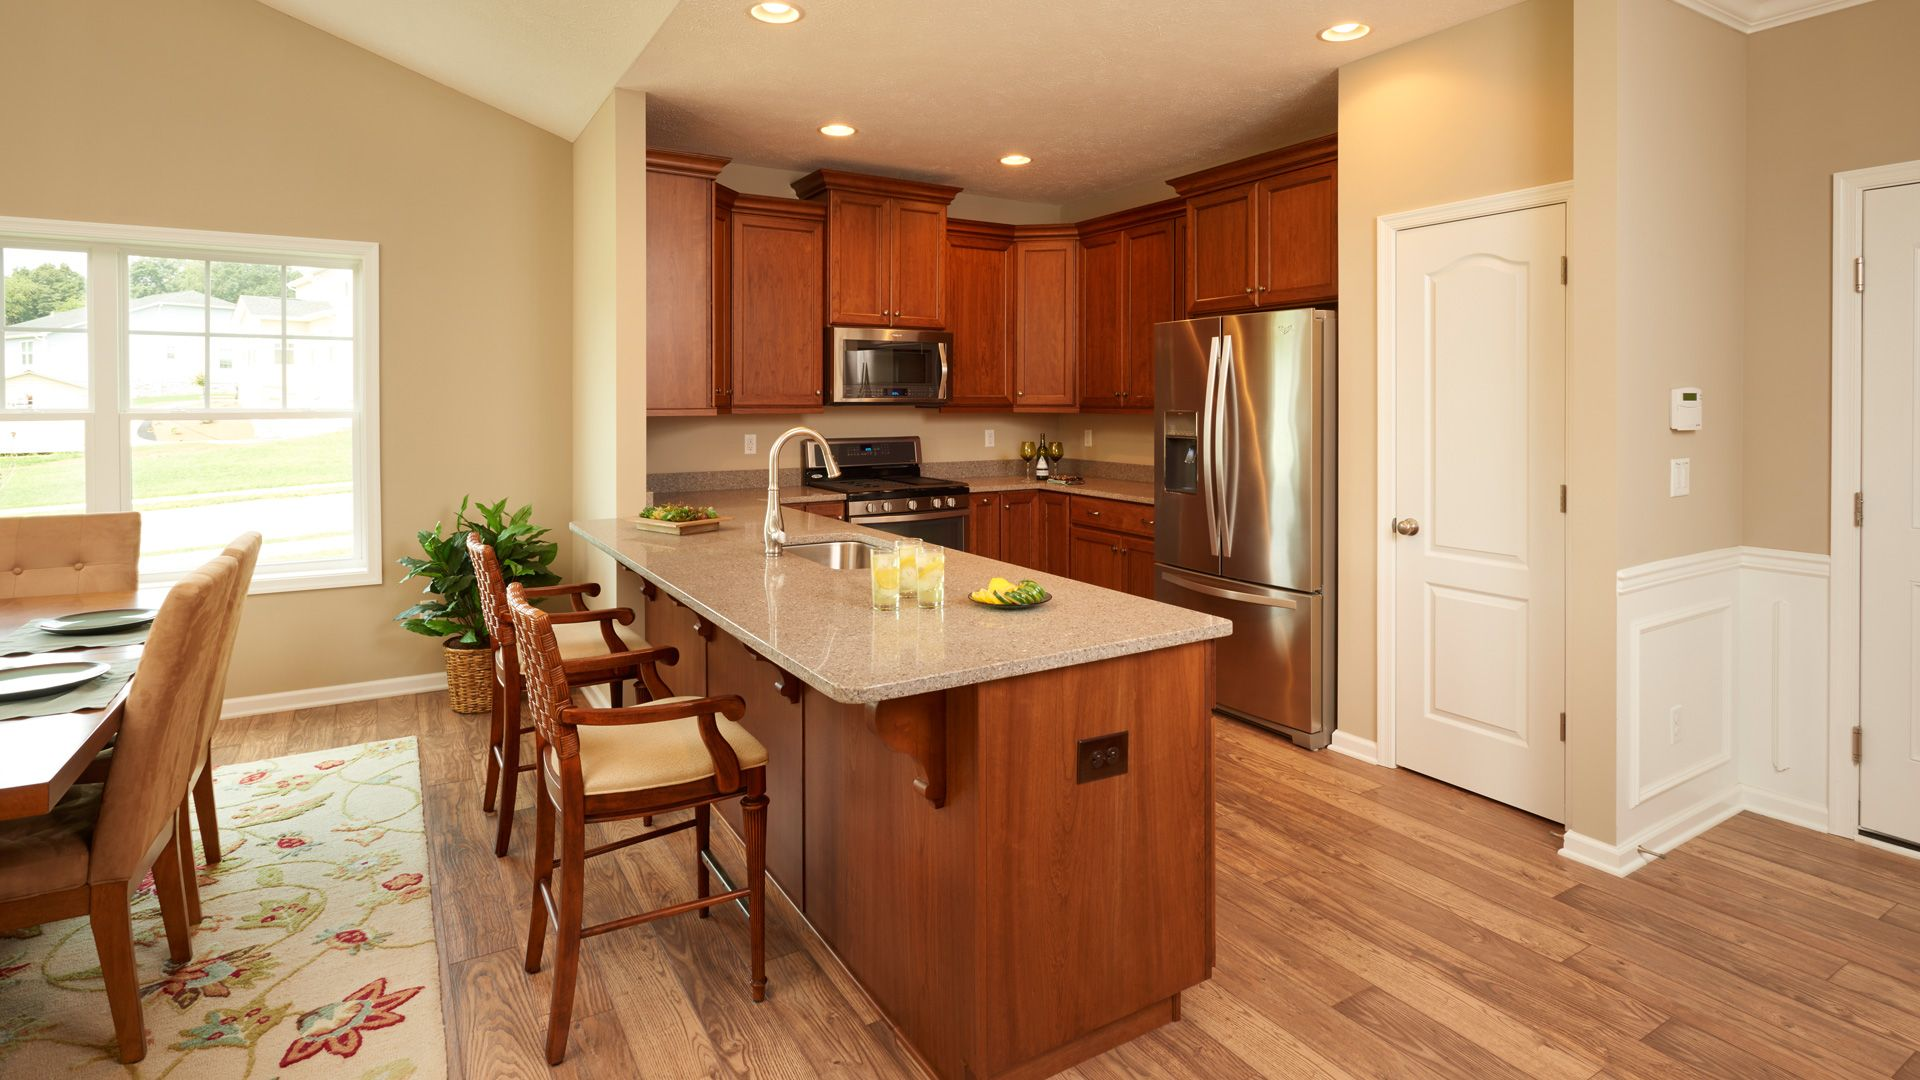 Kitchen featured in the Aspen By S & A Homes in State College, PA